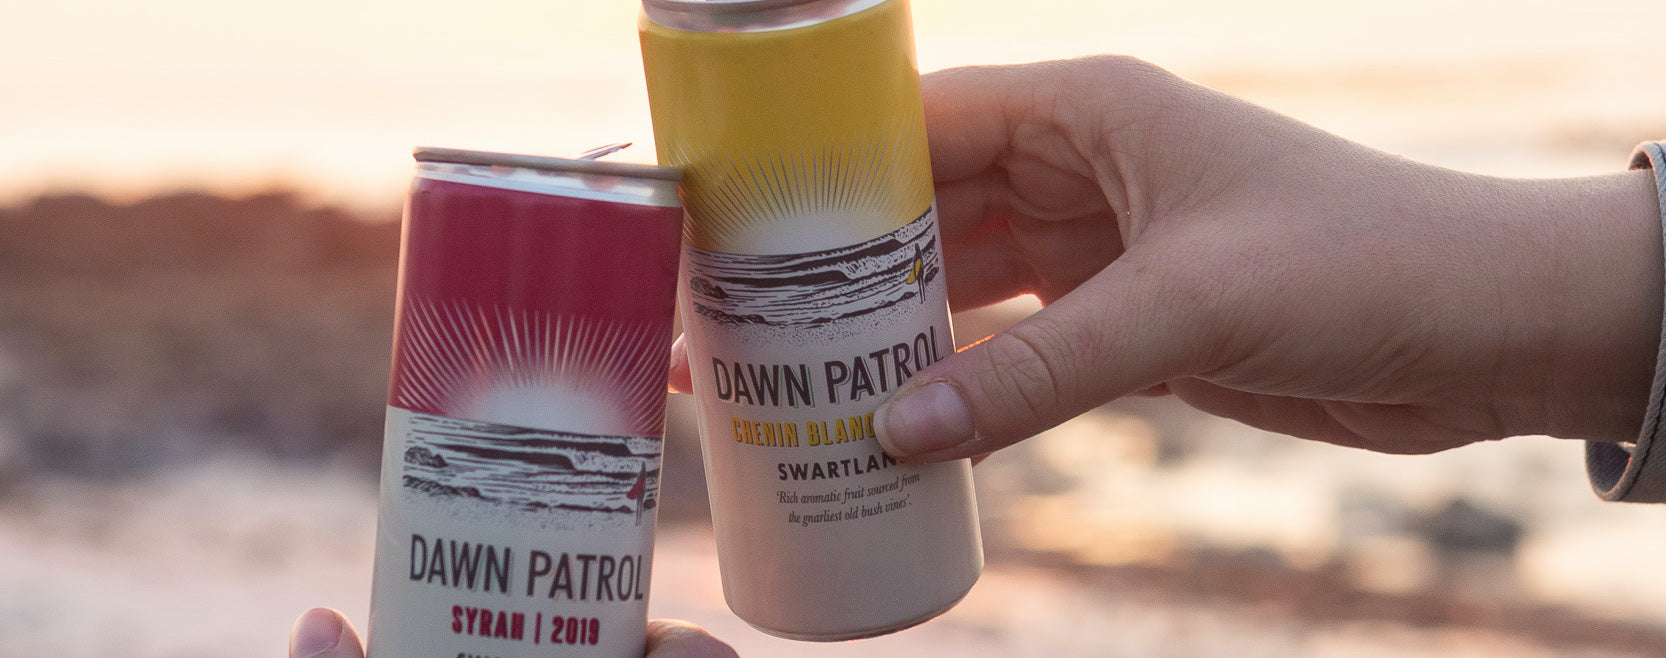 Dawn Patrol in a can perfect for sundowners